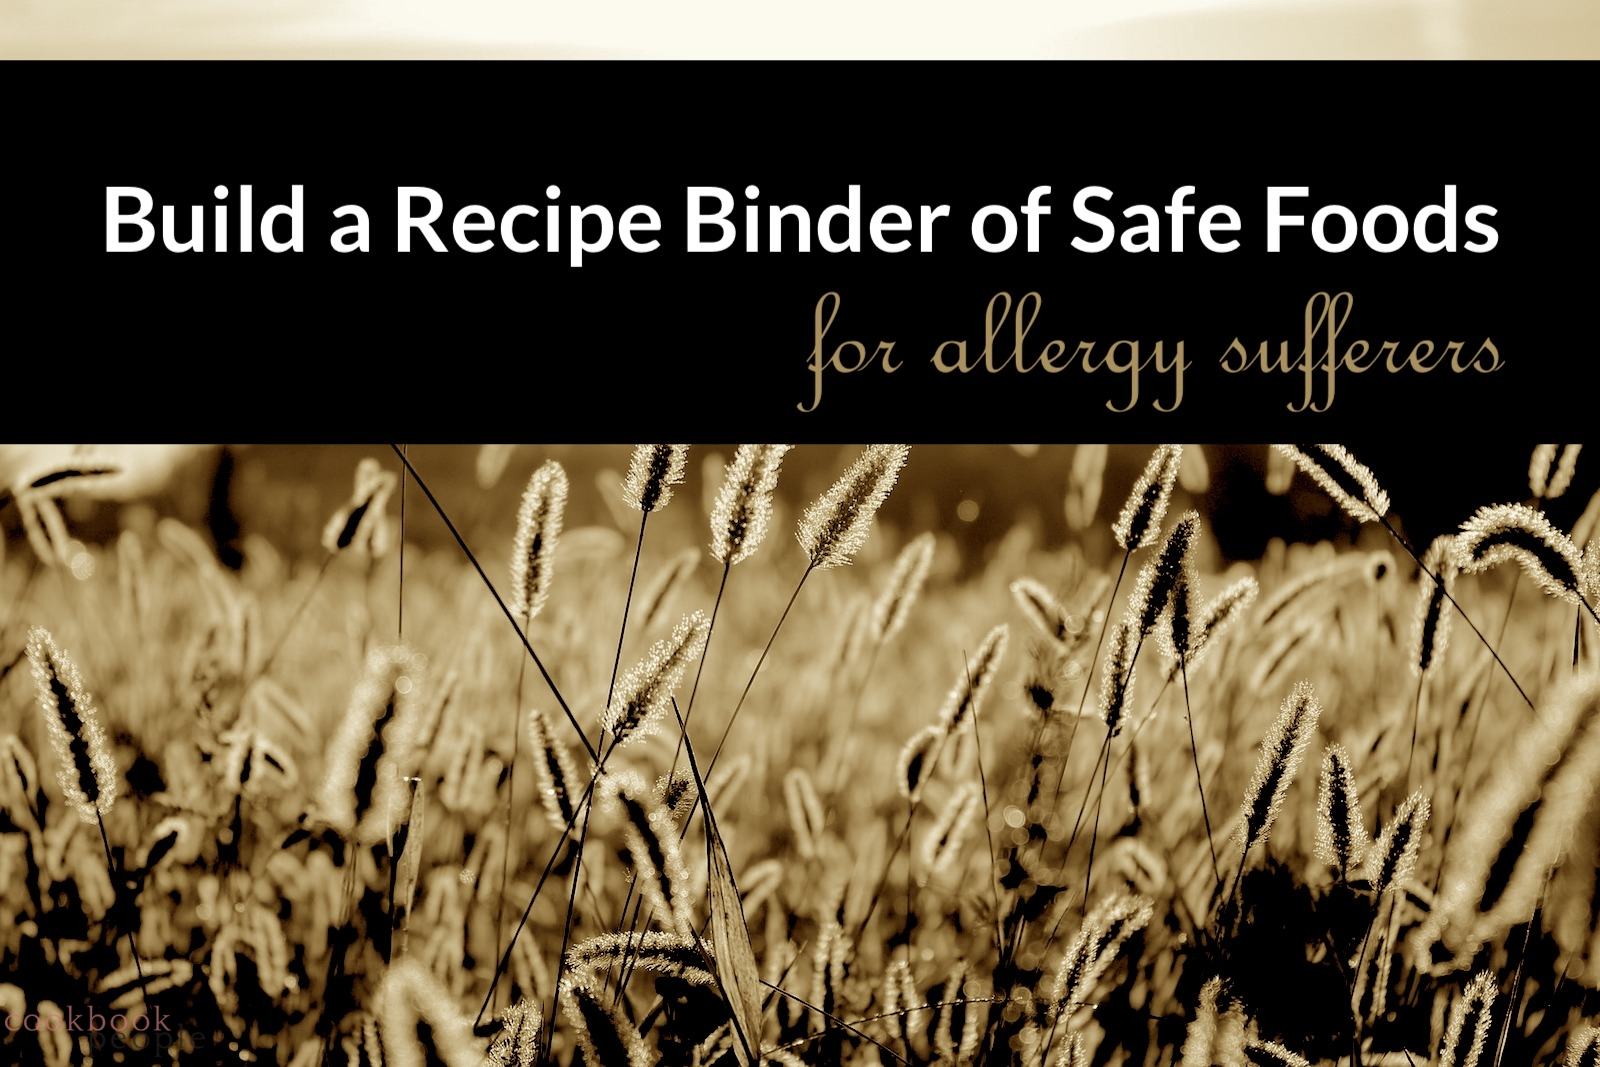 Photo of wheat field overlaid with text: Build a binder of safe foods for allergy sufferers